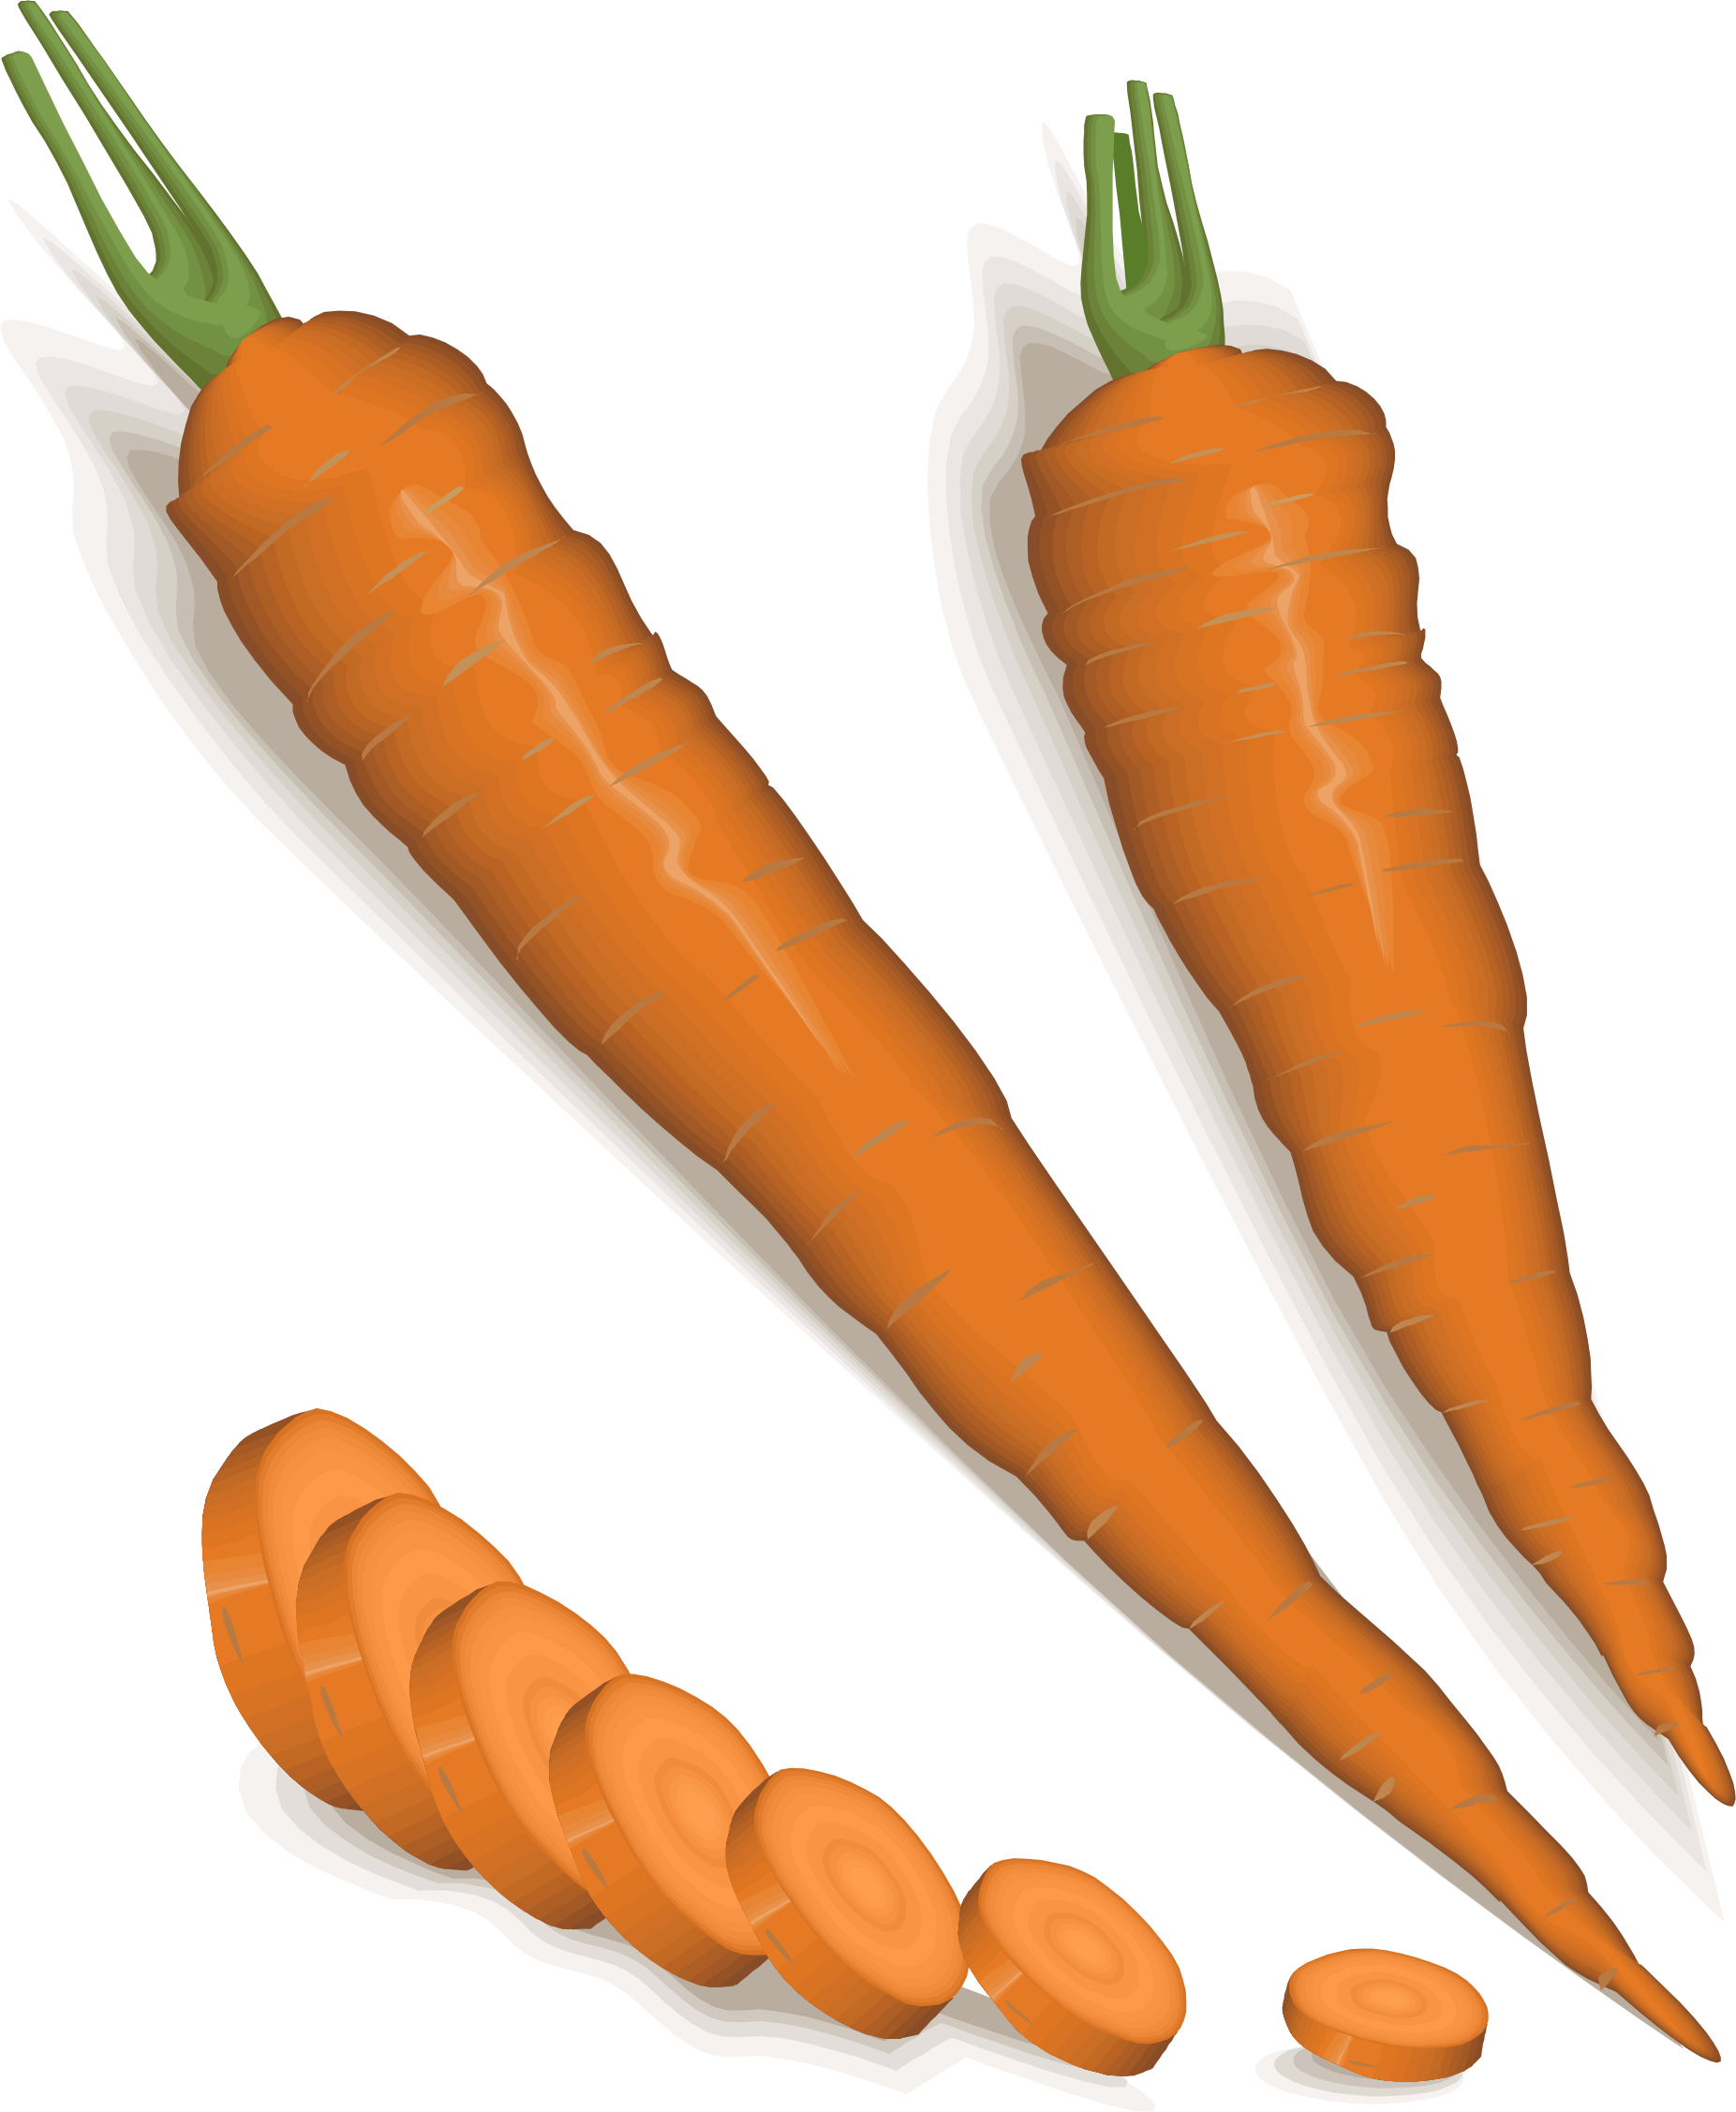 carrots by cactus cowboy